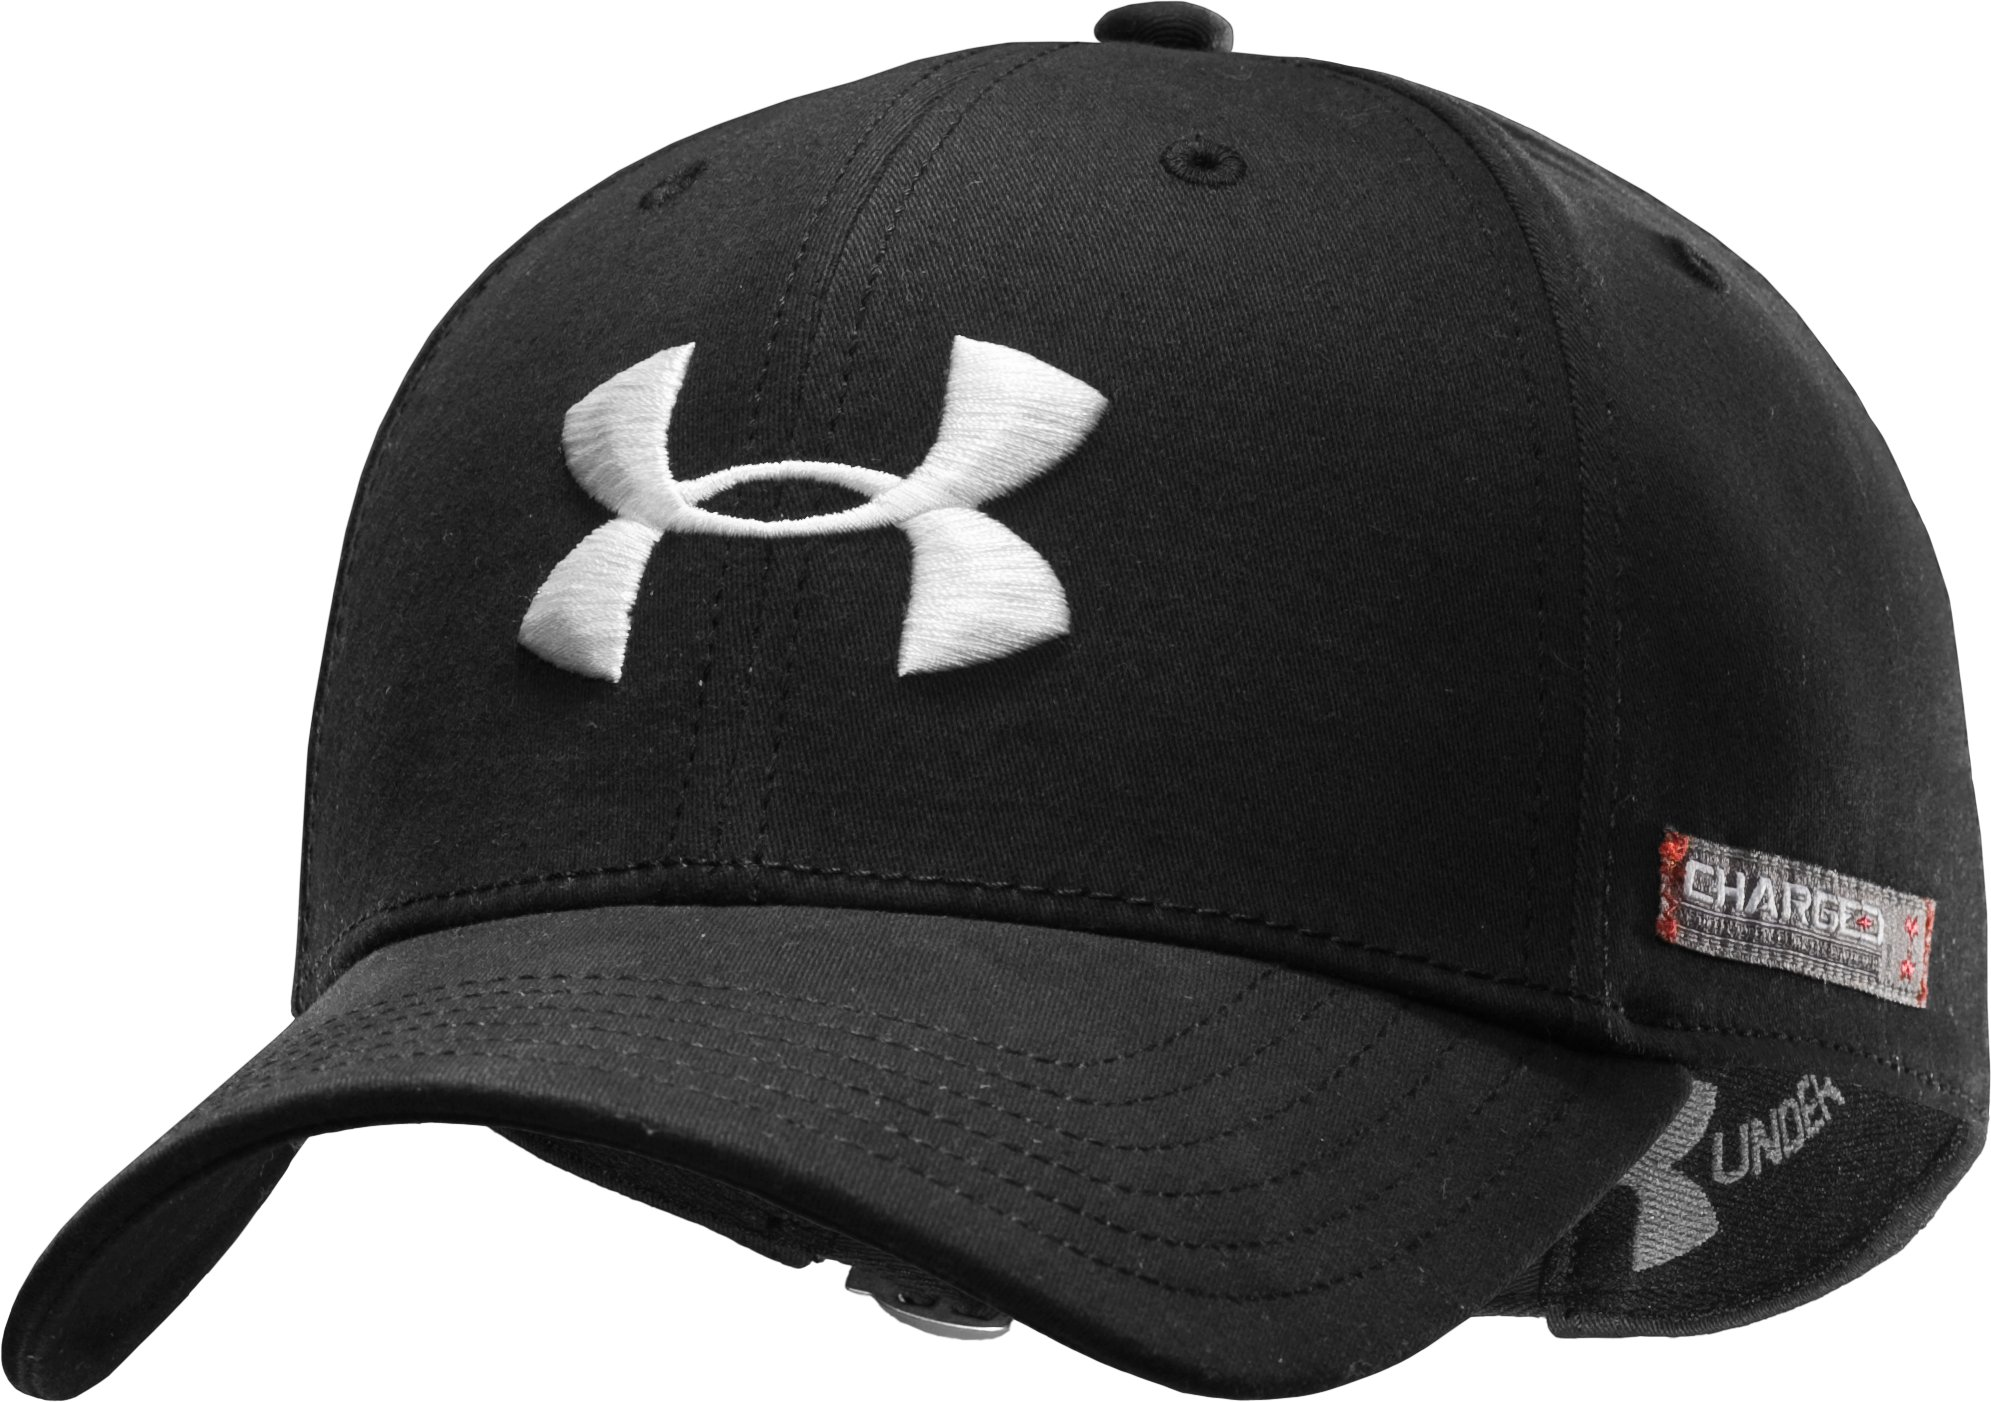 Men's Charged Cotton® Adjustable Cap, Black